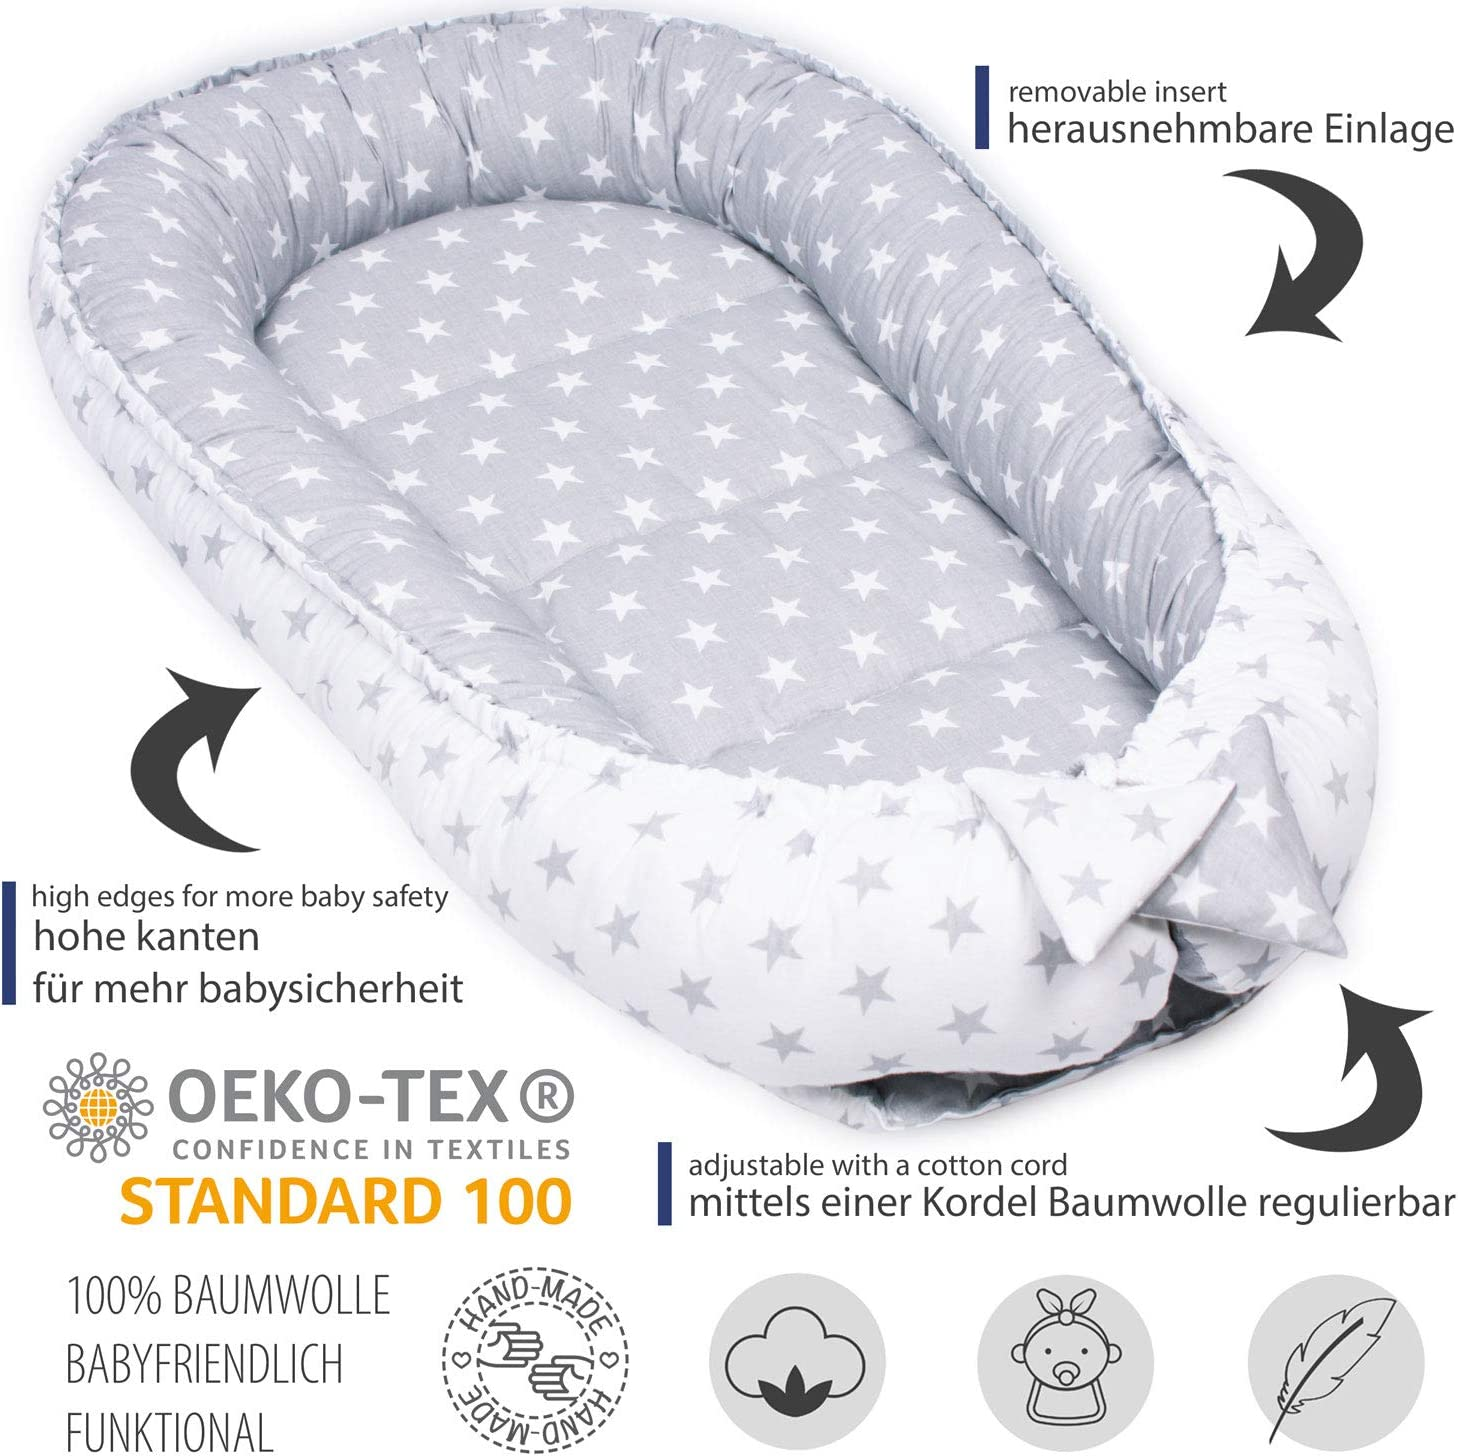 Cocoon Cot Hypoallergenic Palulli Baby Nest Travel Cot for Newborn 100/% Cotton Oeko-Tex Made in The EU Cot Multifunctional Cosy Nest with Soft Extra Mattress